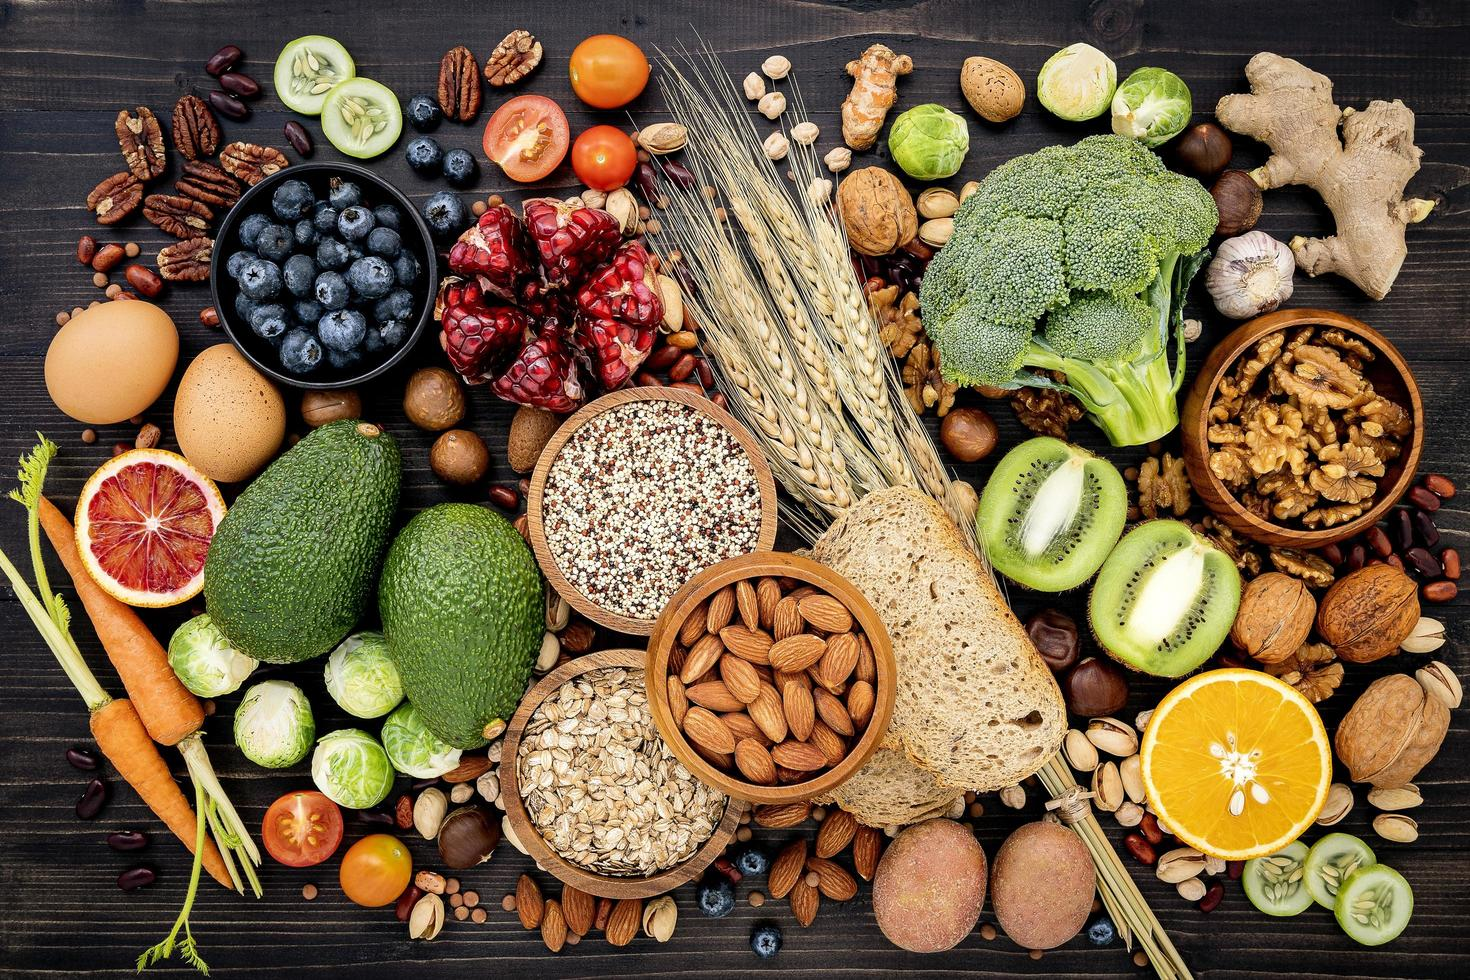 Top view of healthy foods on a black background photo